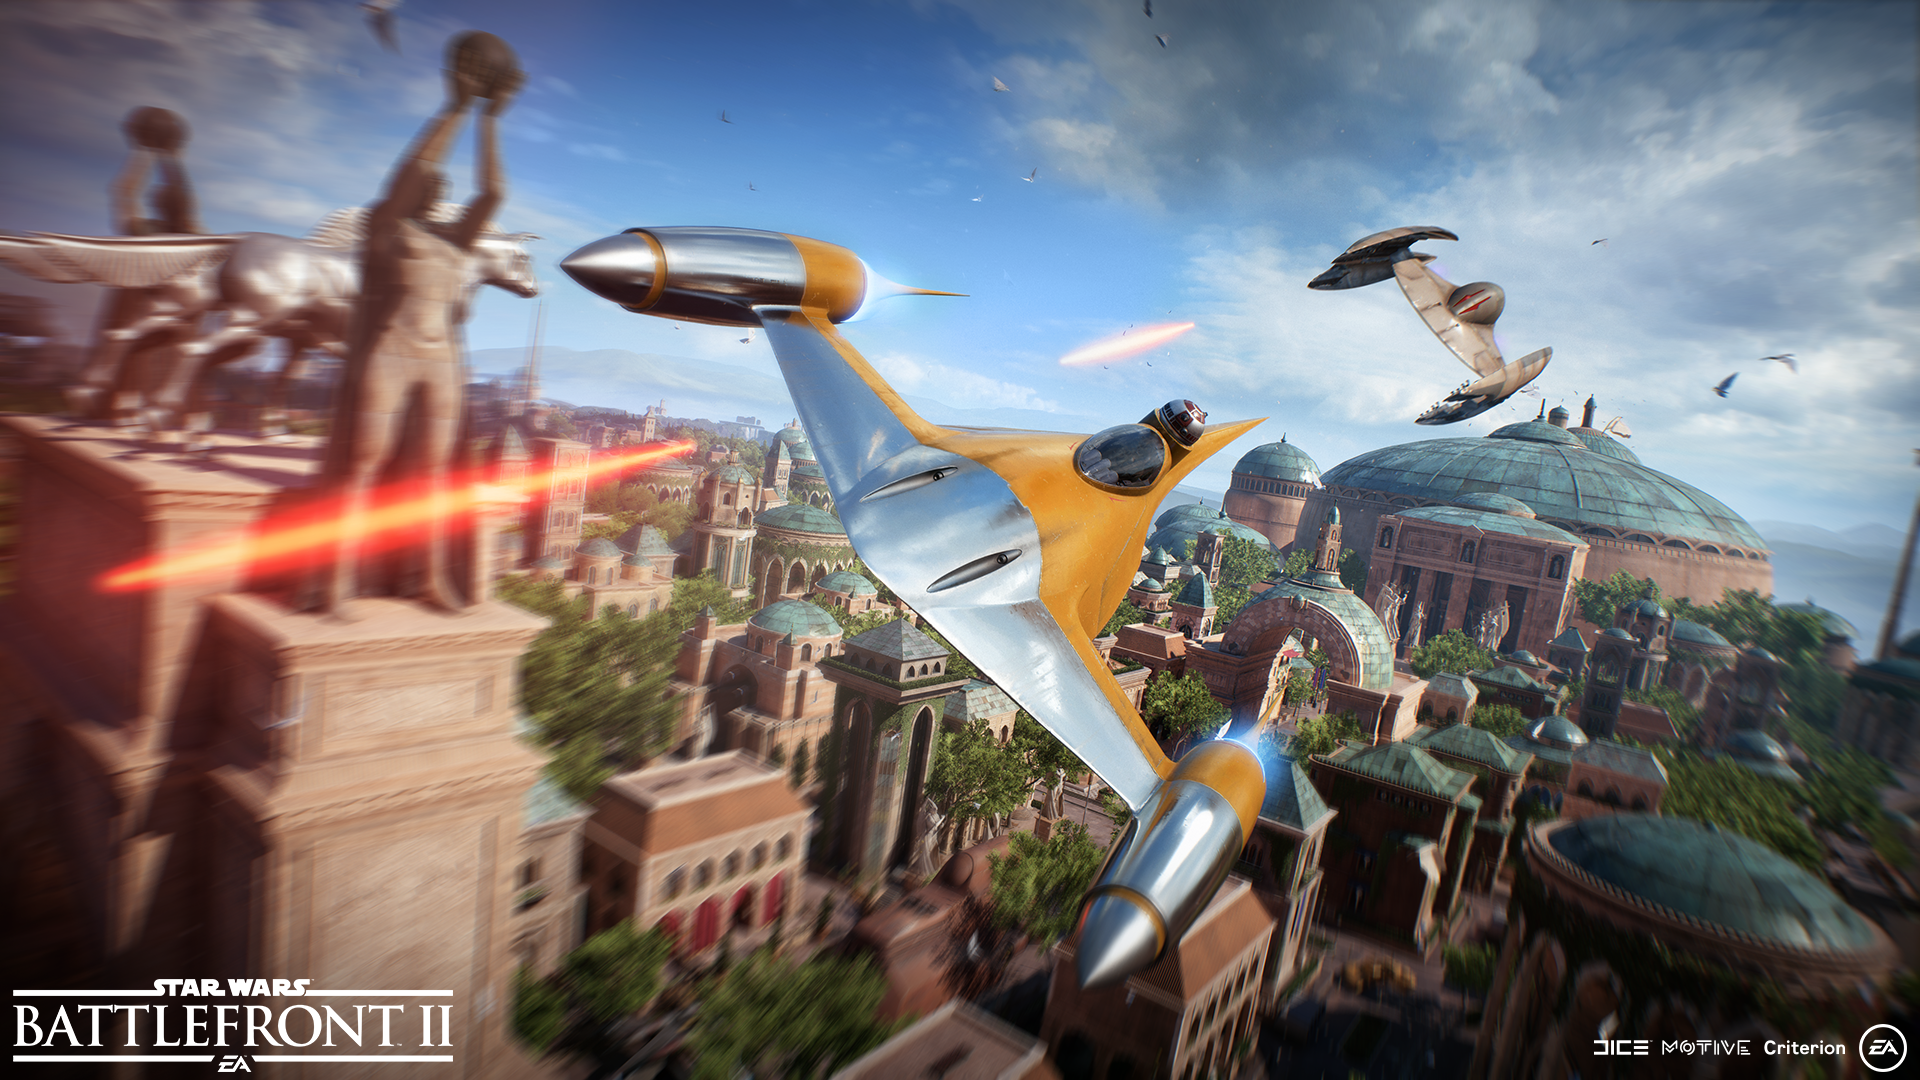 Players figured out a way to get a free Star Wars: Battlefront 2 beta key from EA without pre-ordering